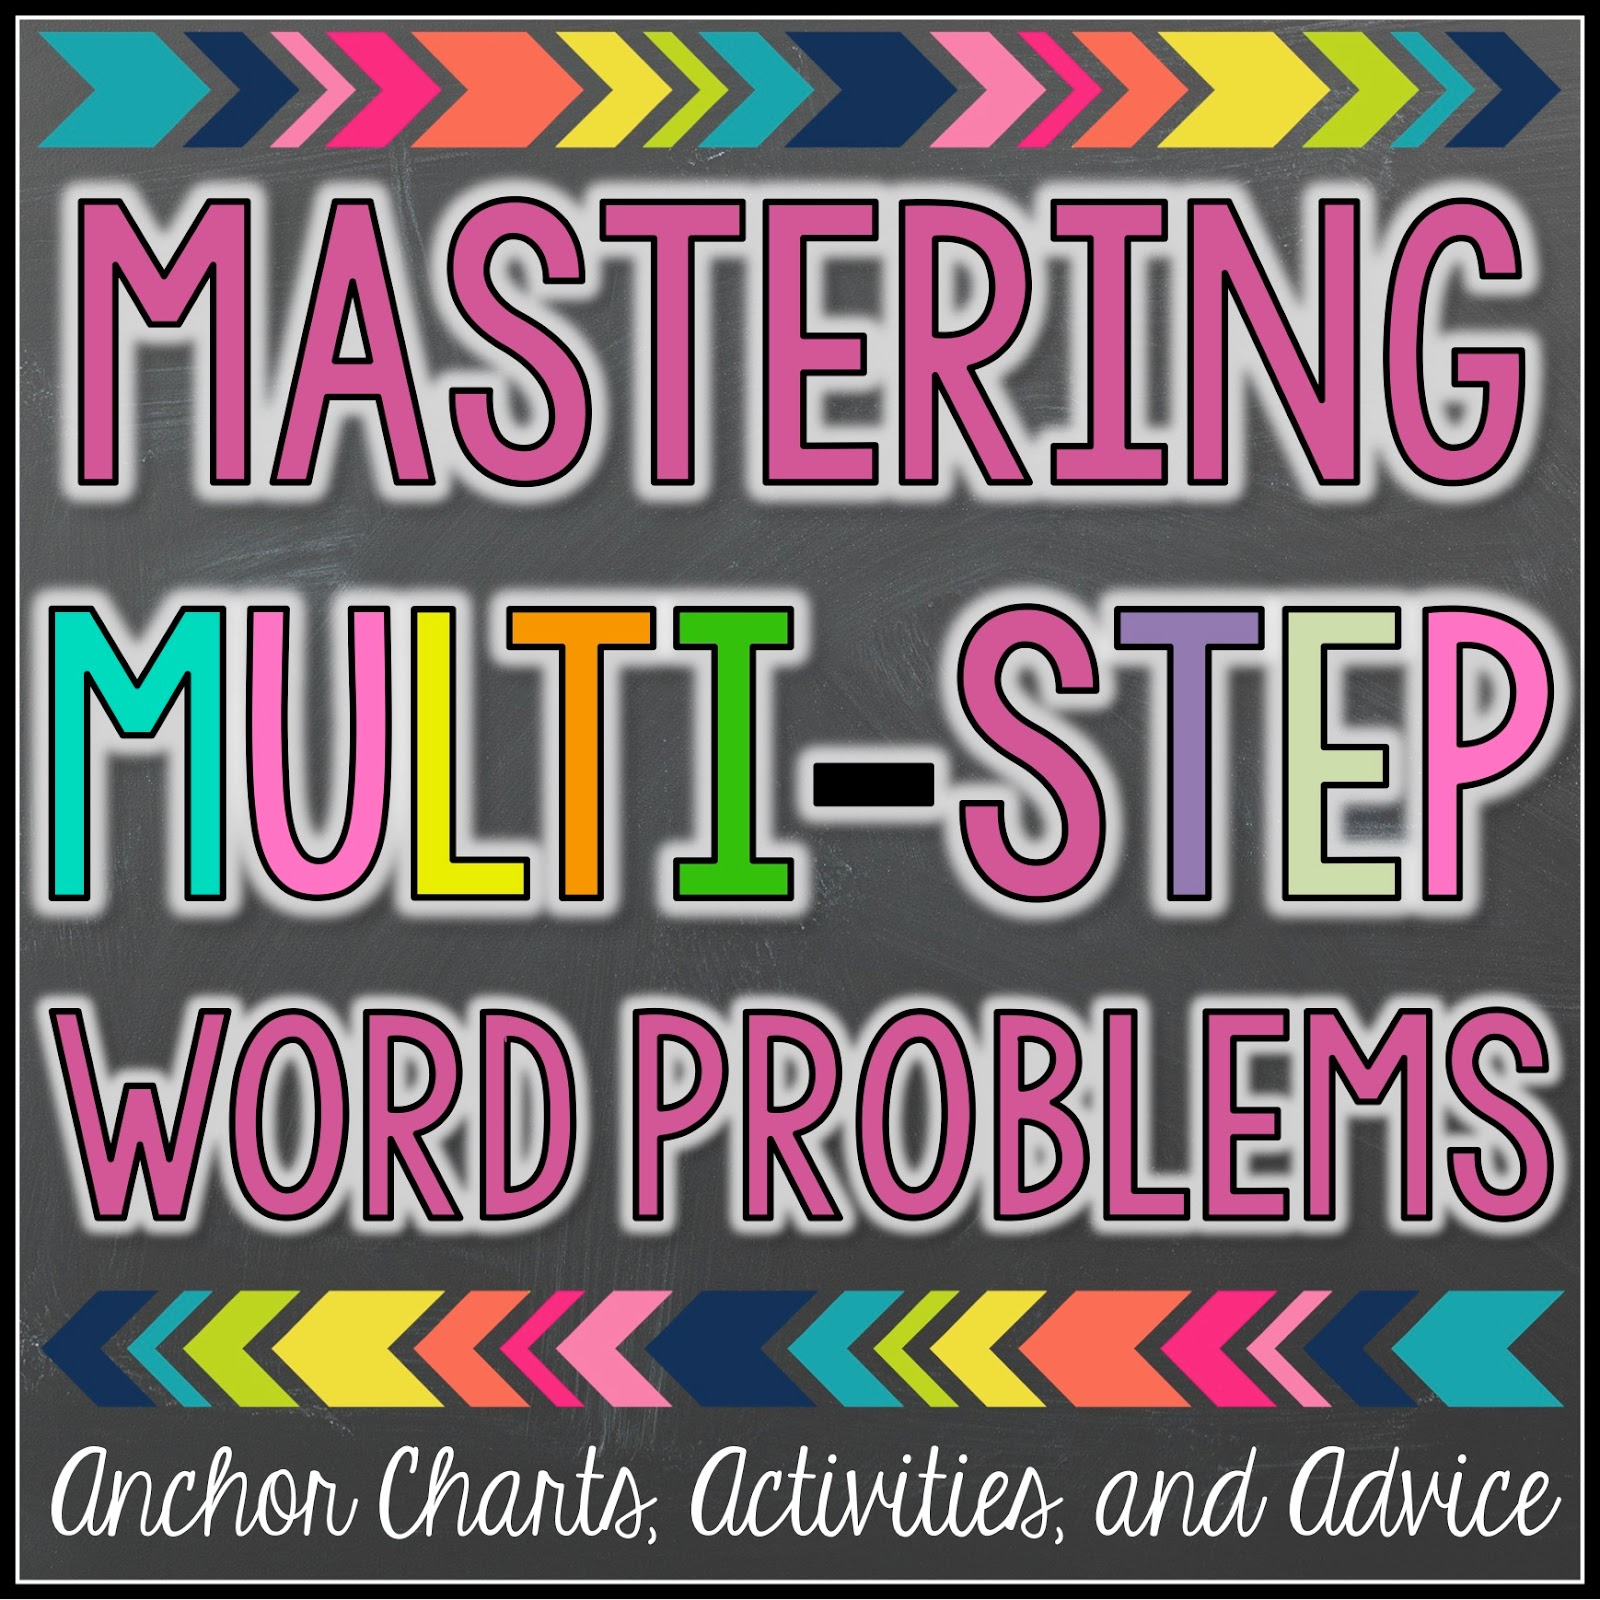 Mastering Multi Step Word Problems